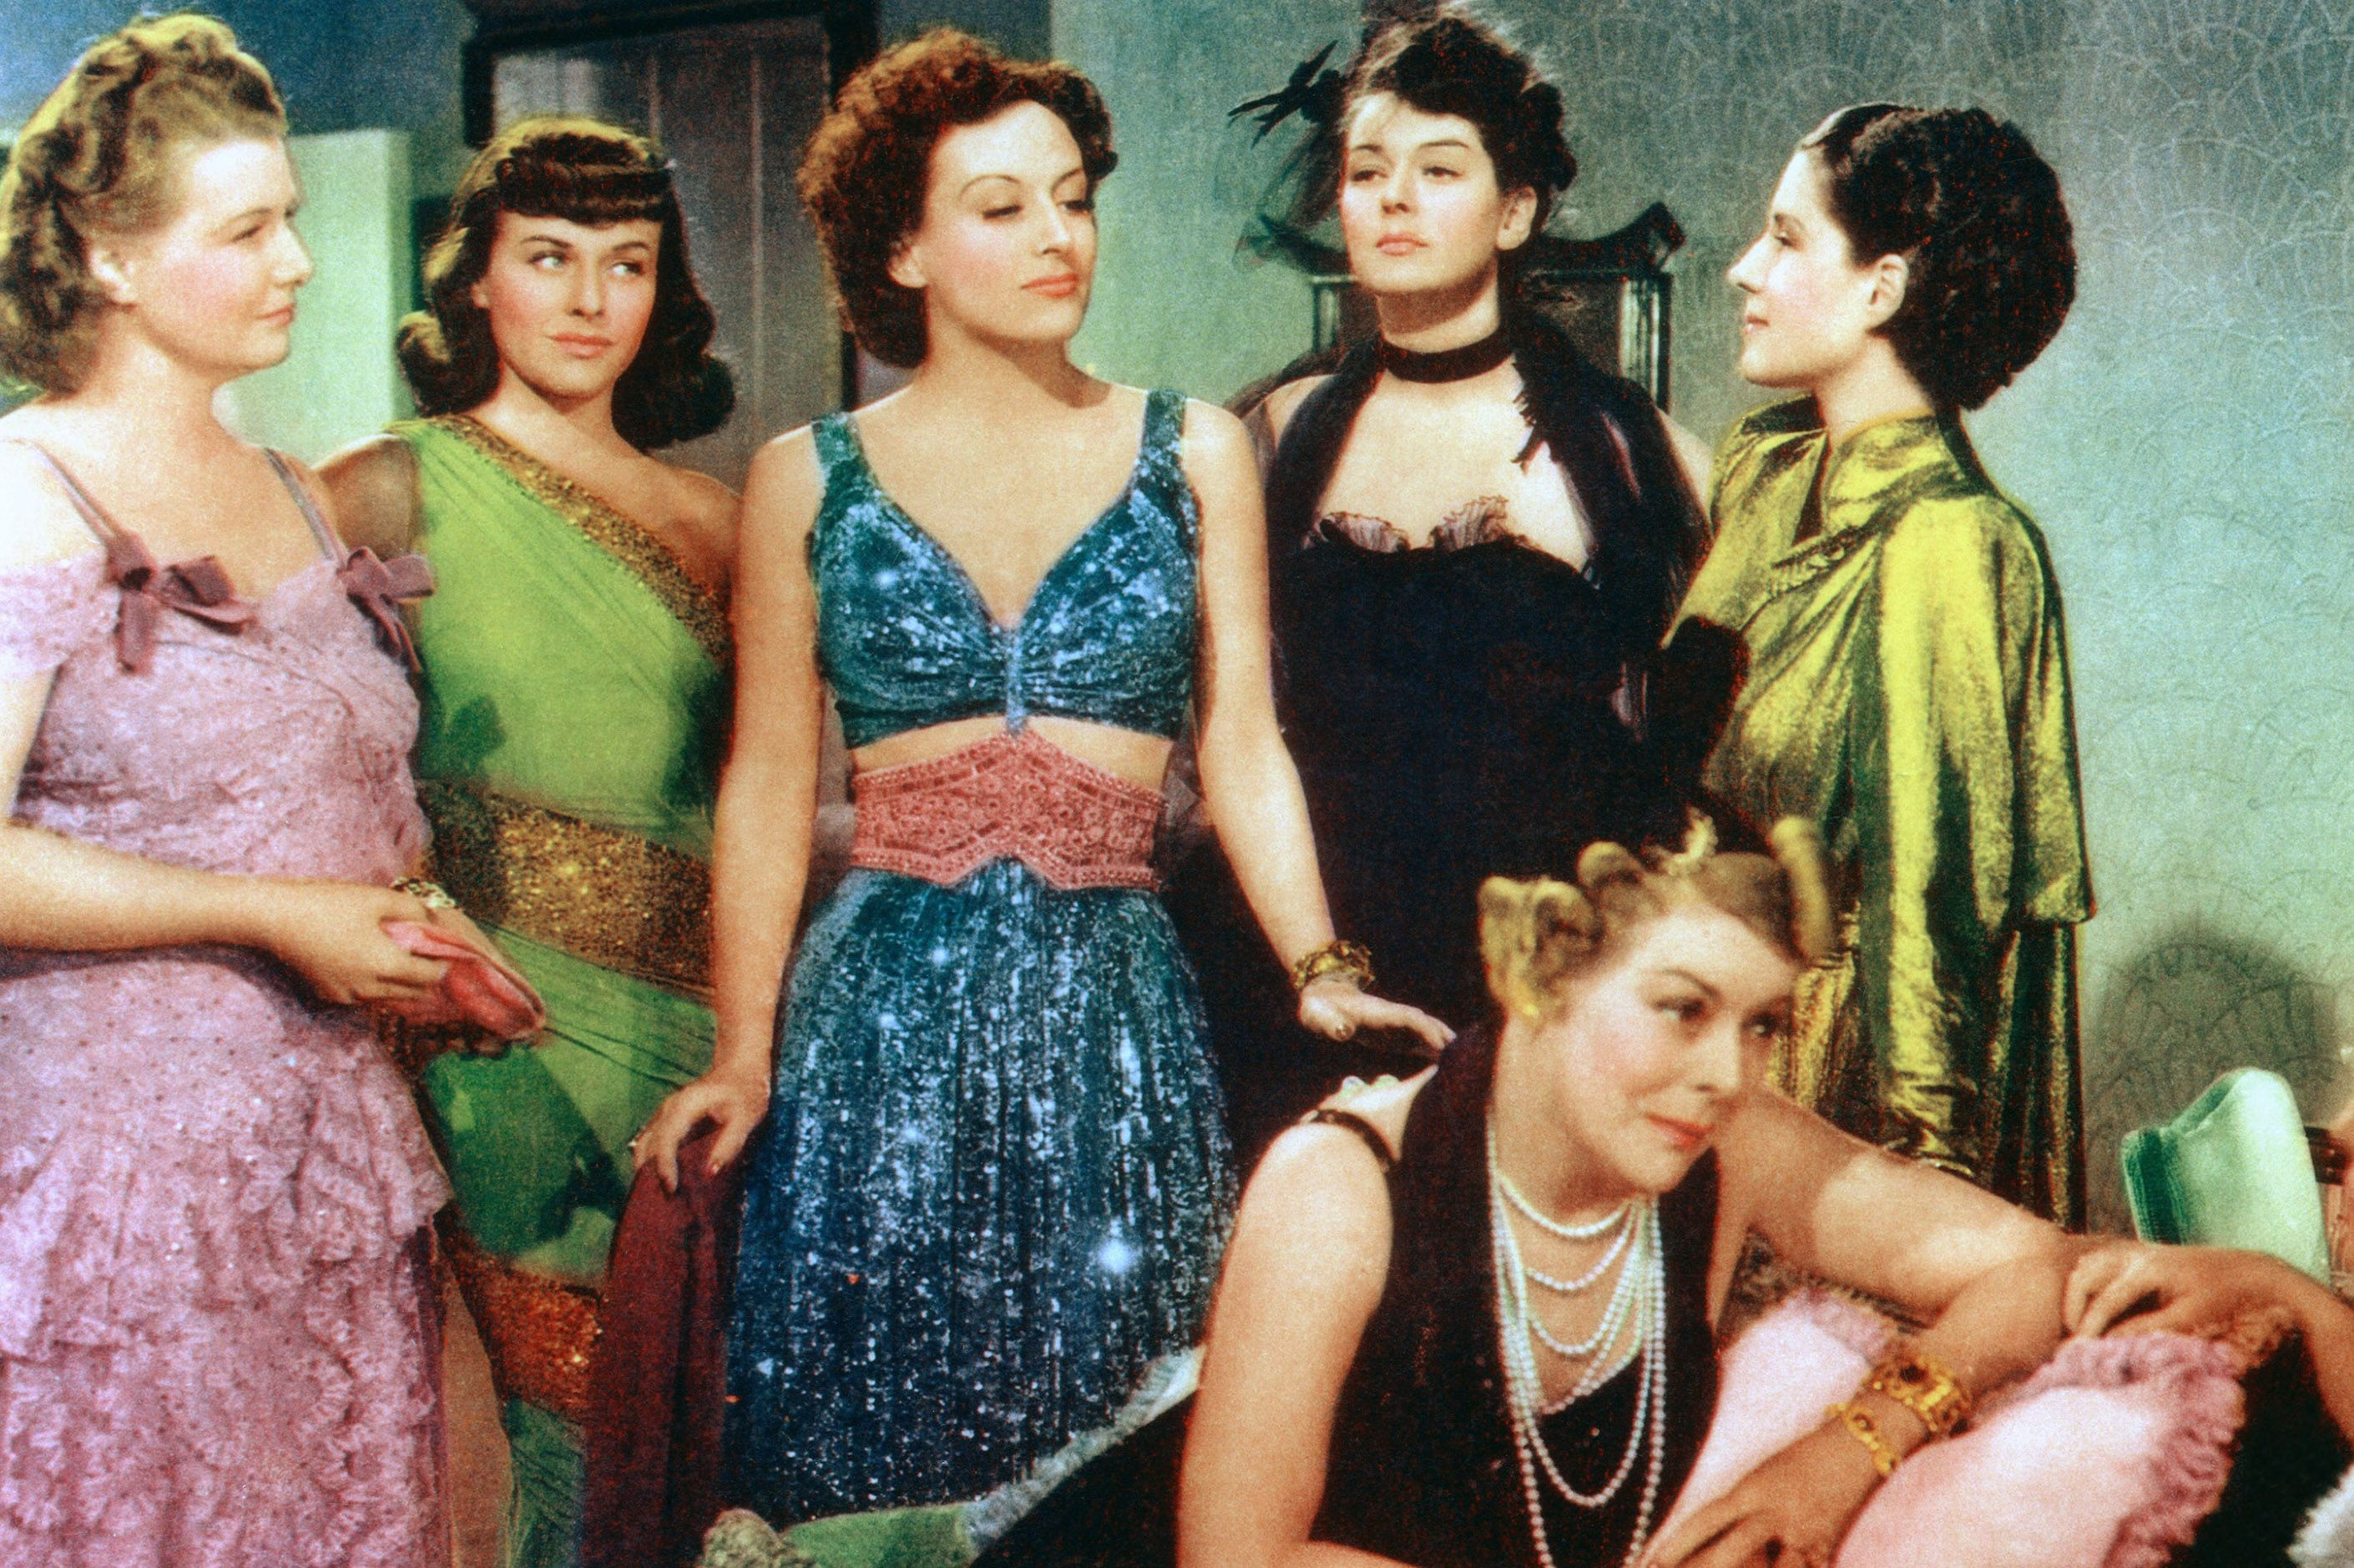 Watch Now For 1939, George Cukor's The Women —about divorce, fashion and complicated female intimacies—was awfully forward thinking. Plus, no men have speaking roles in it!